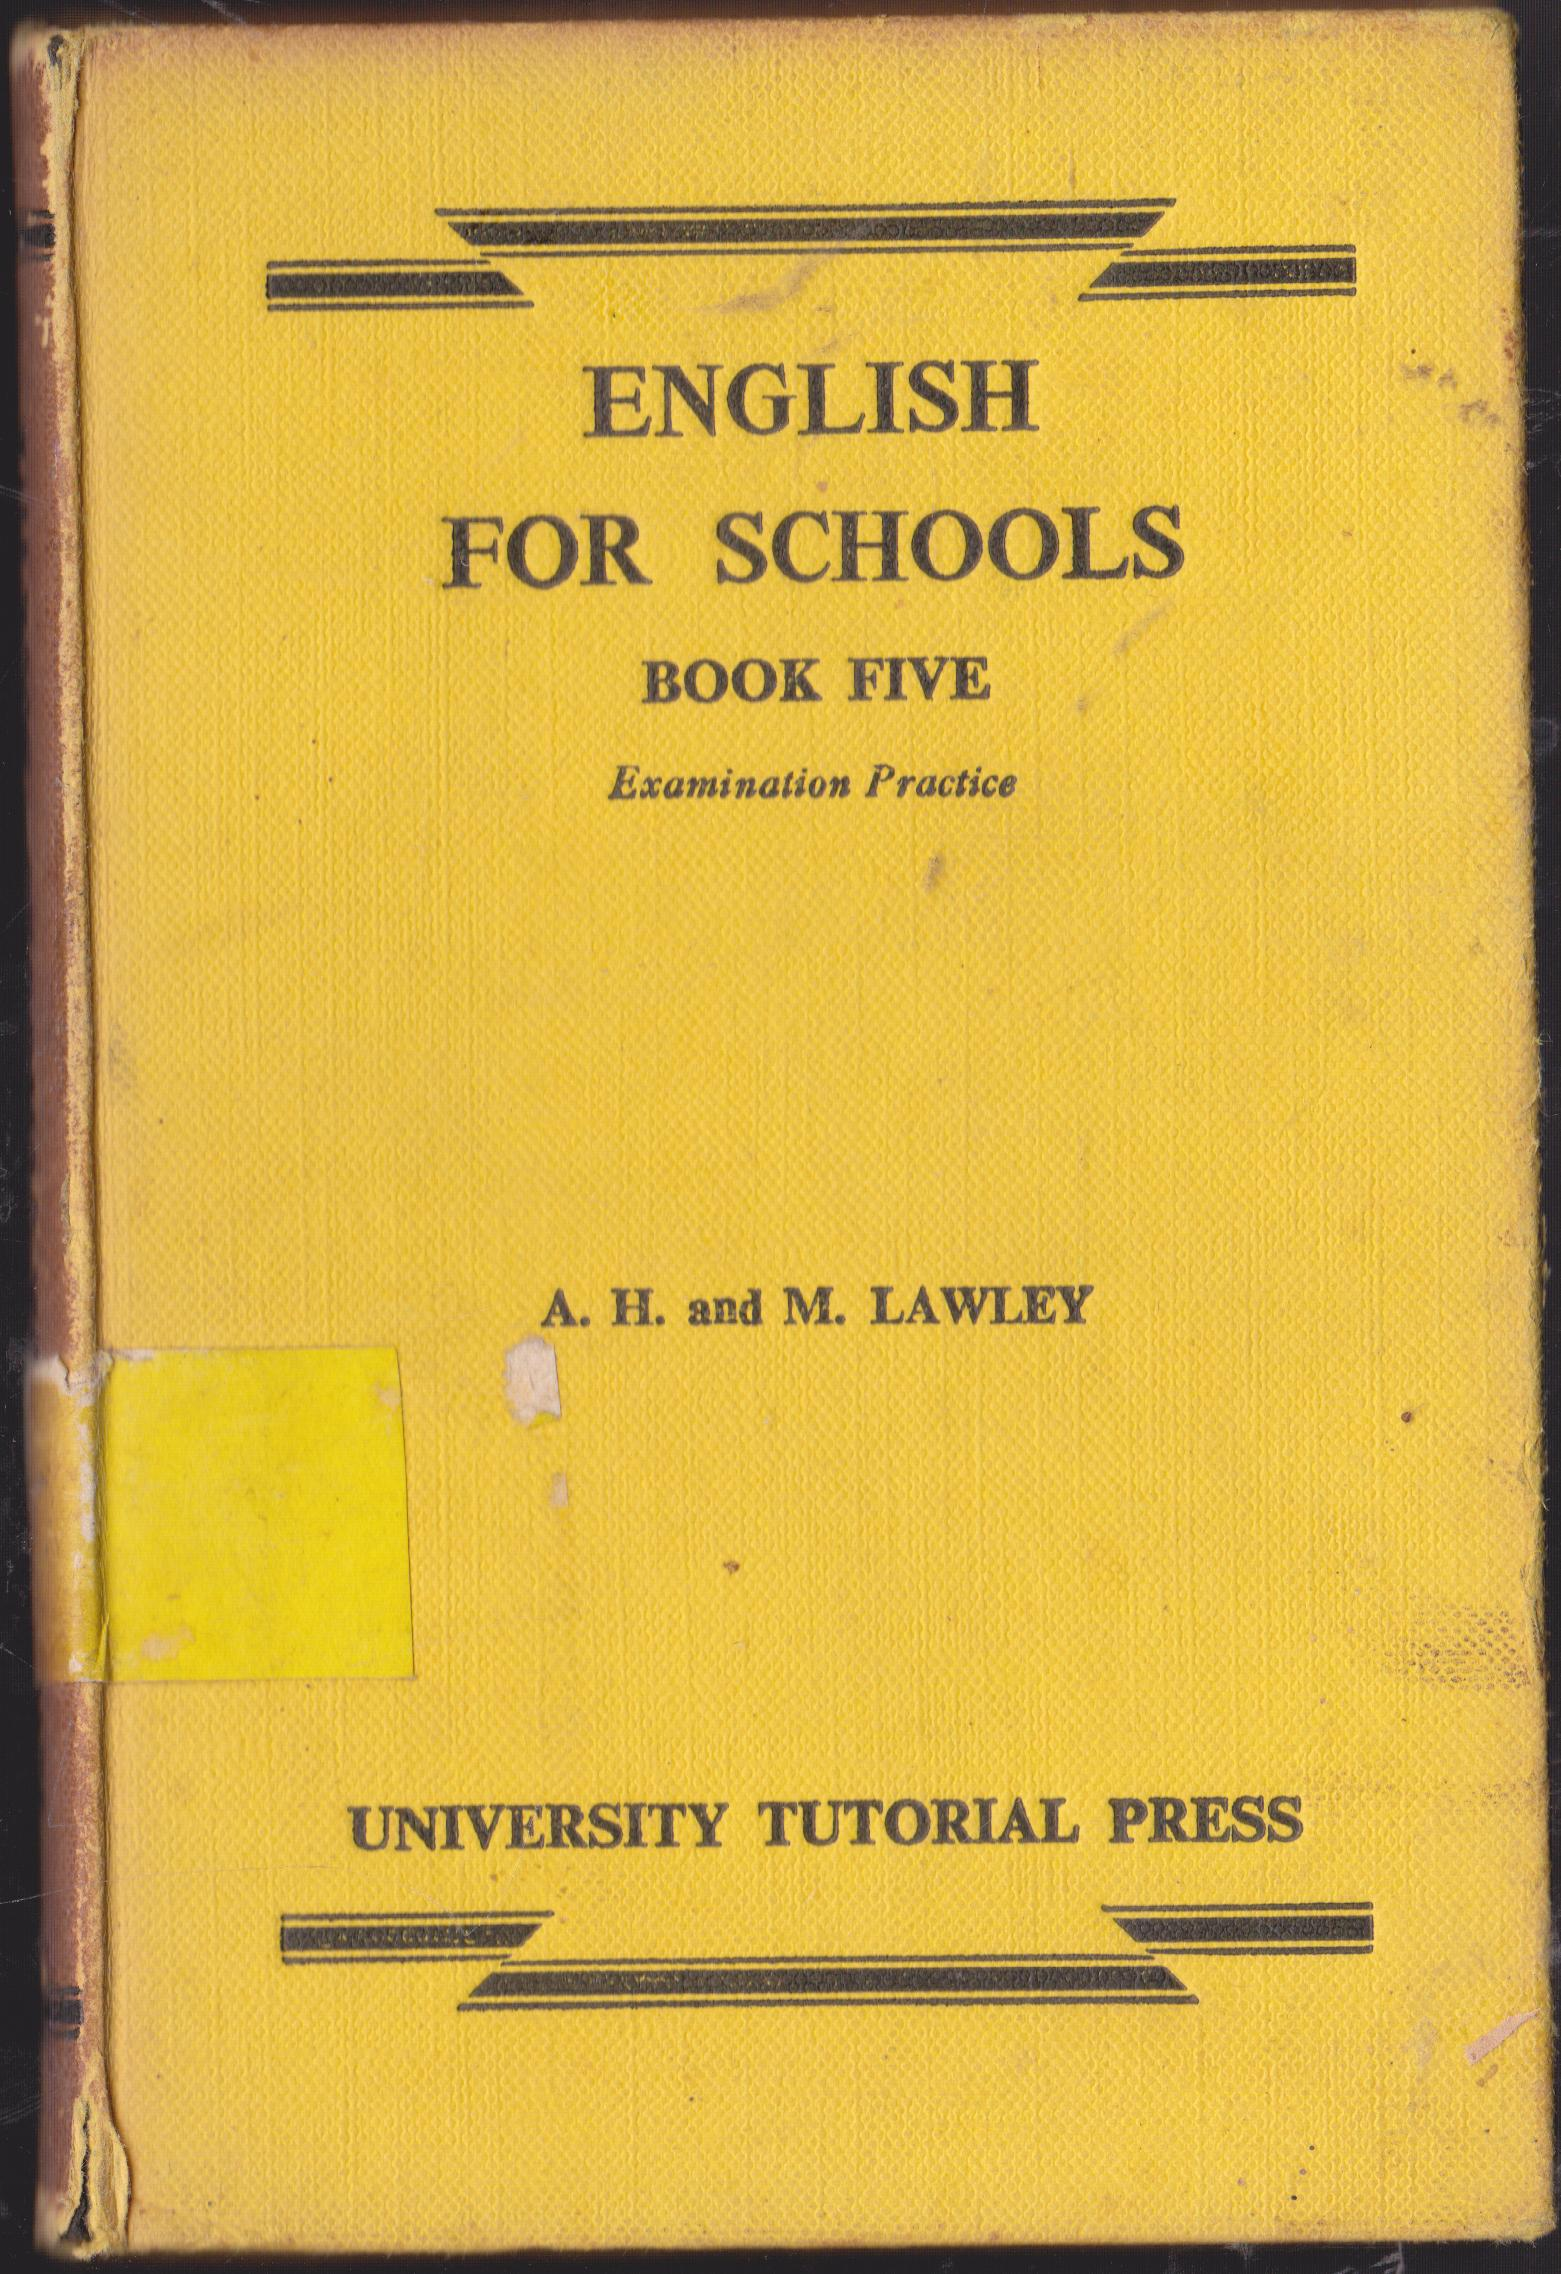 ENGLISH FOR SCHOOLS BOOK FIVE